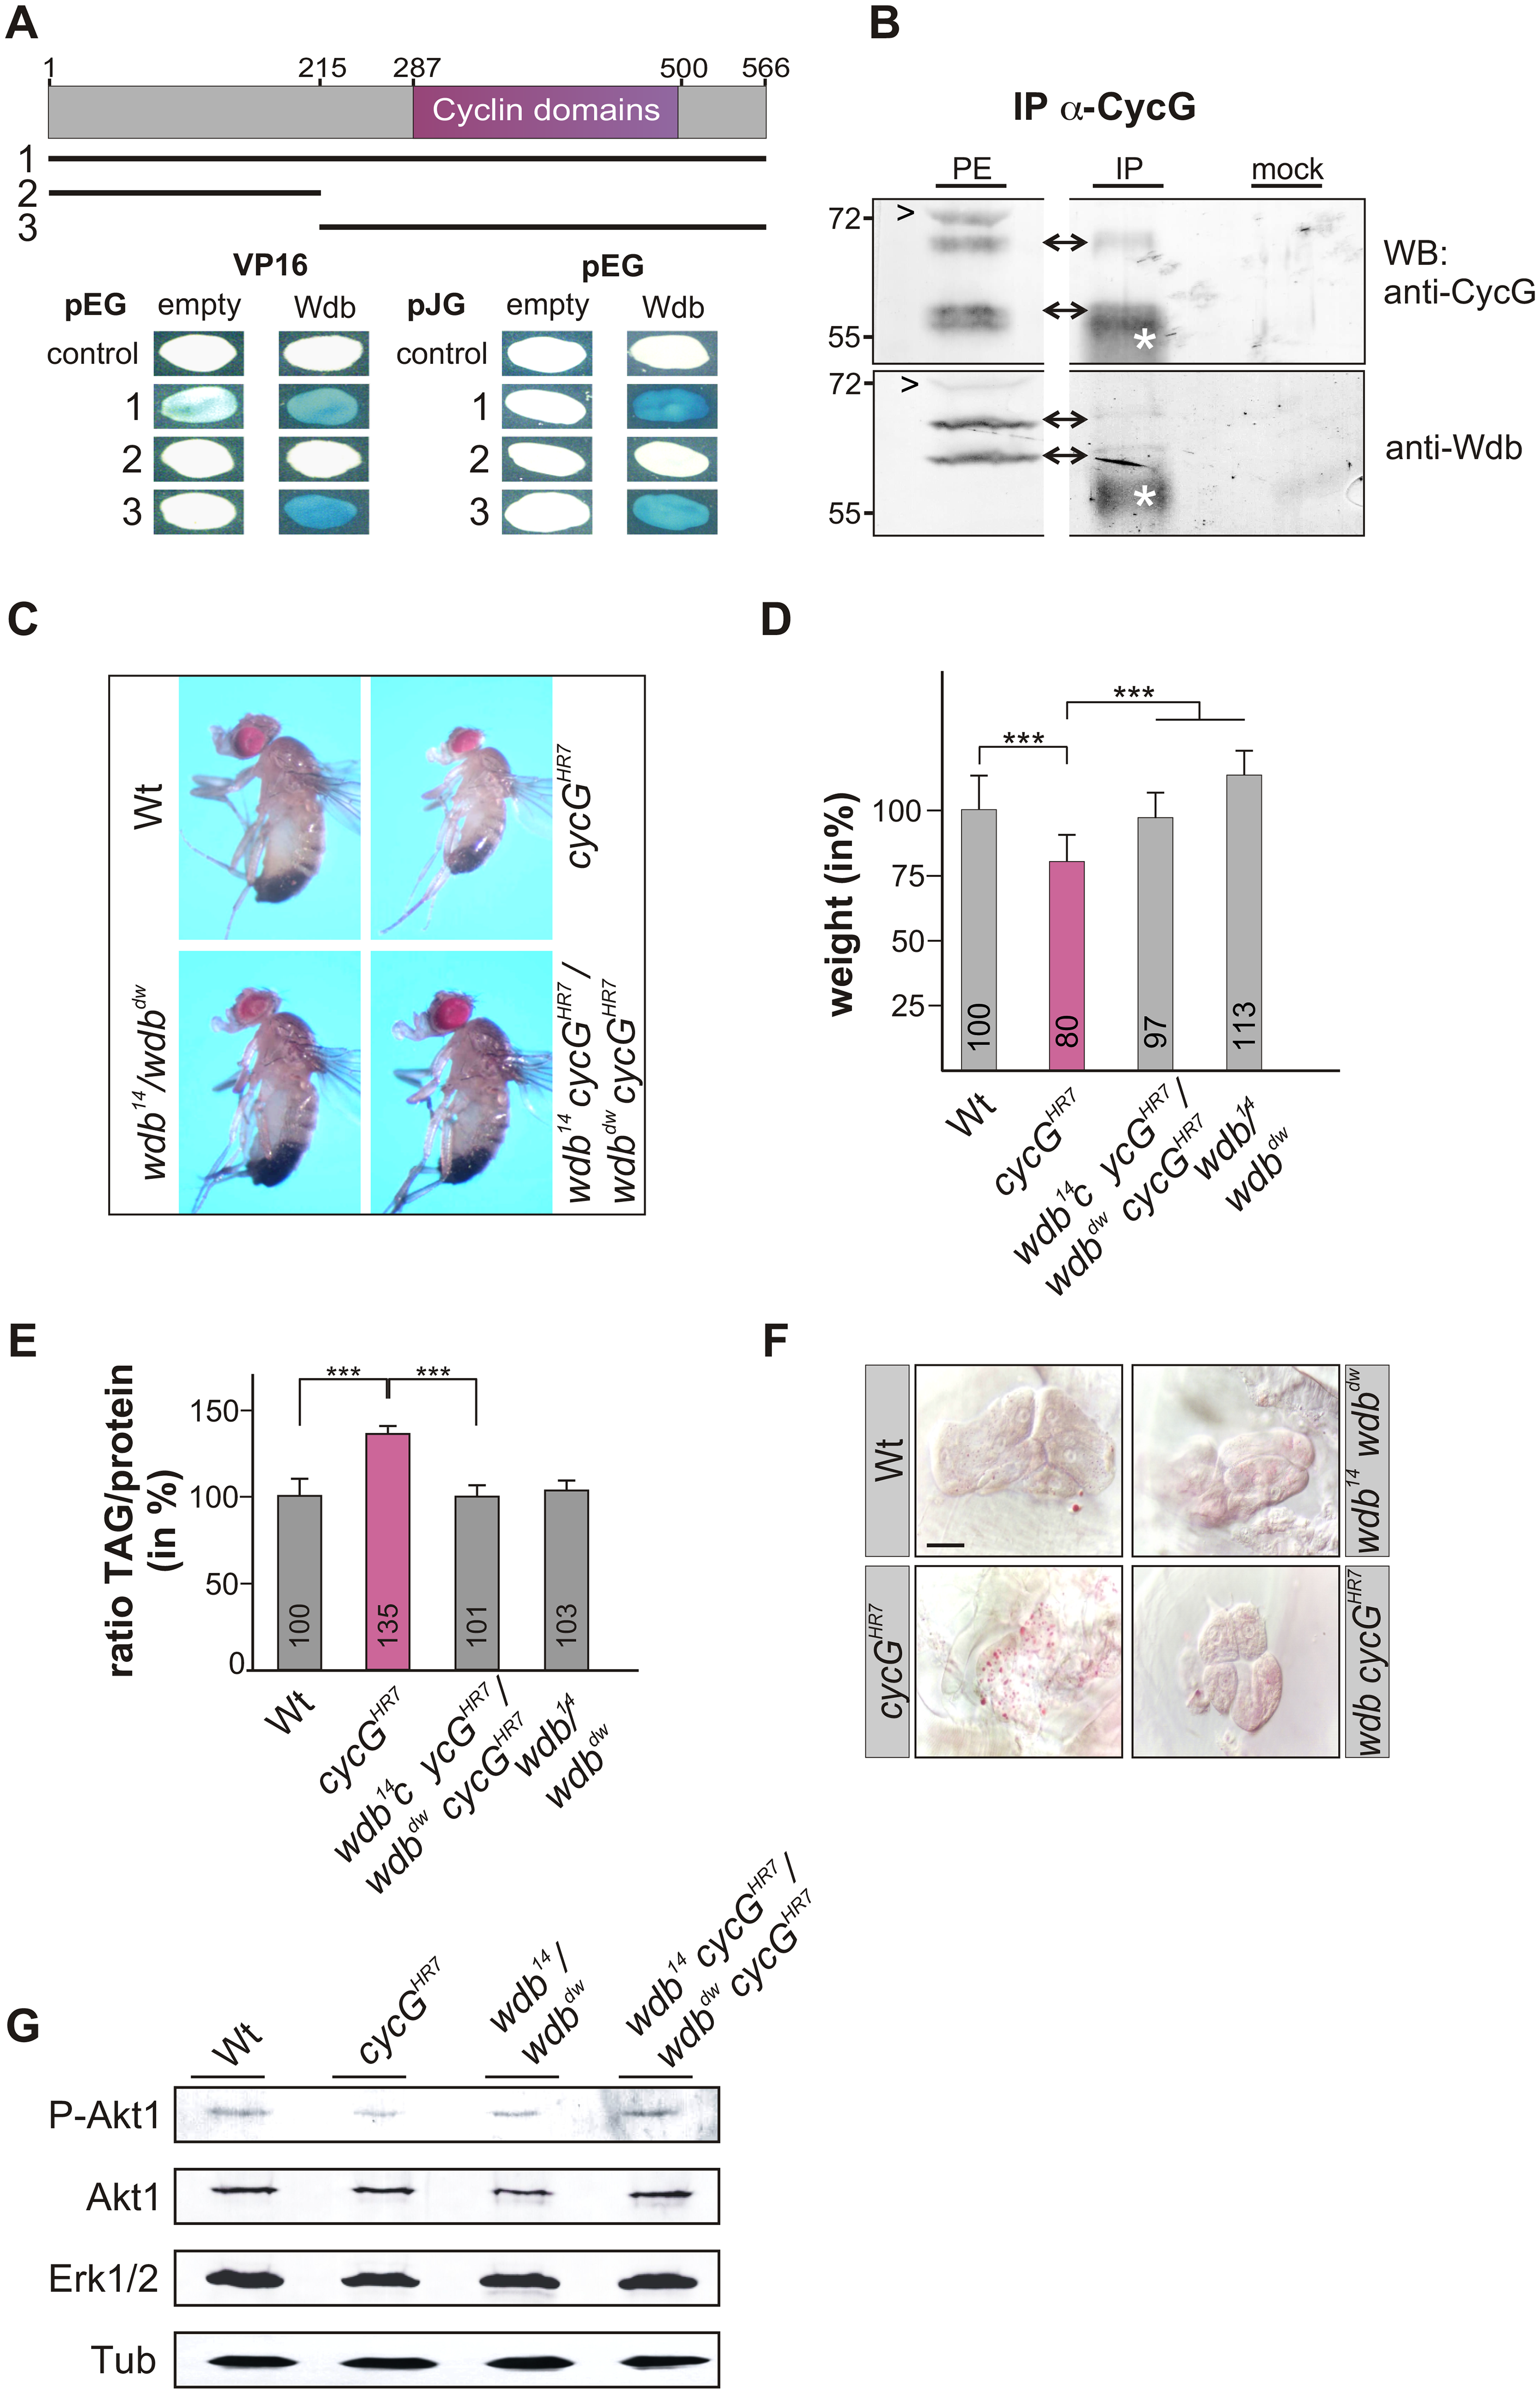 Interaction of CycG and Wdb.